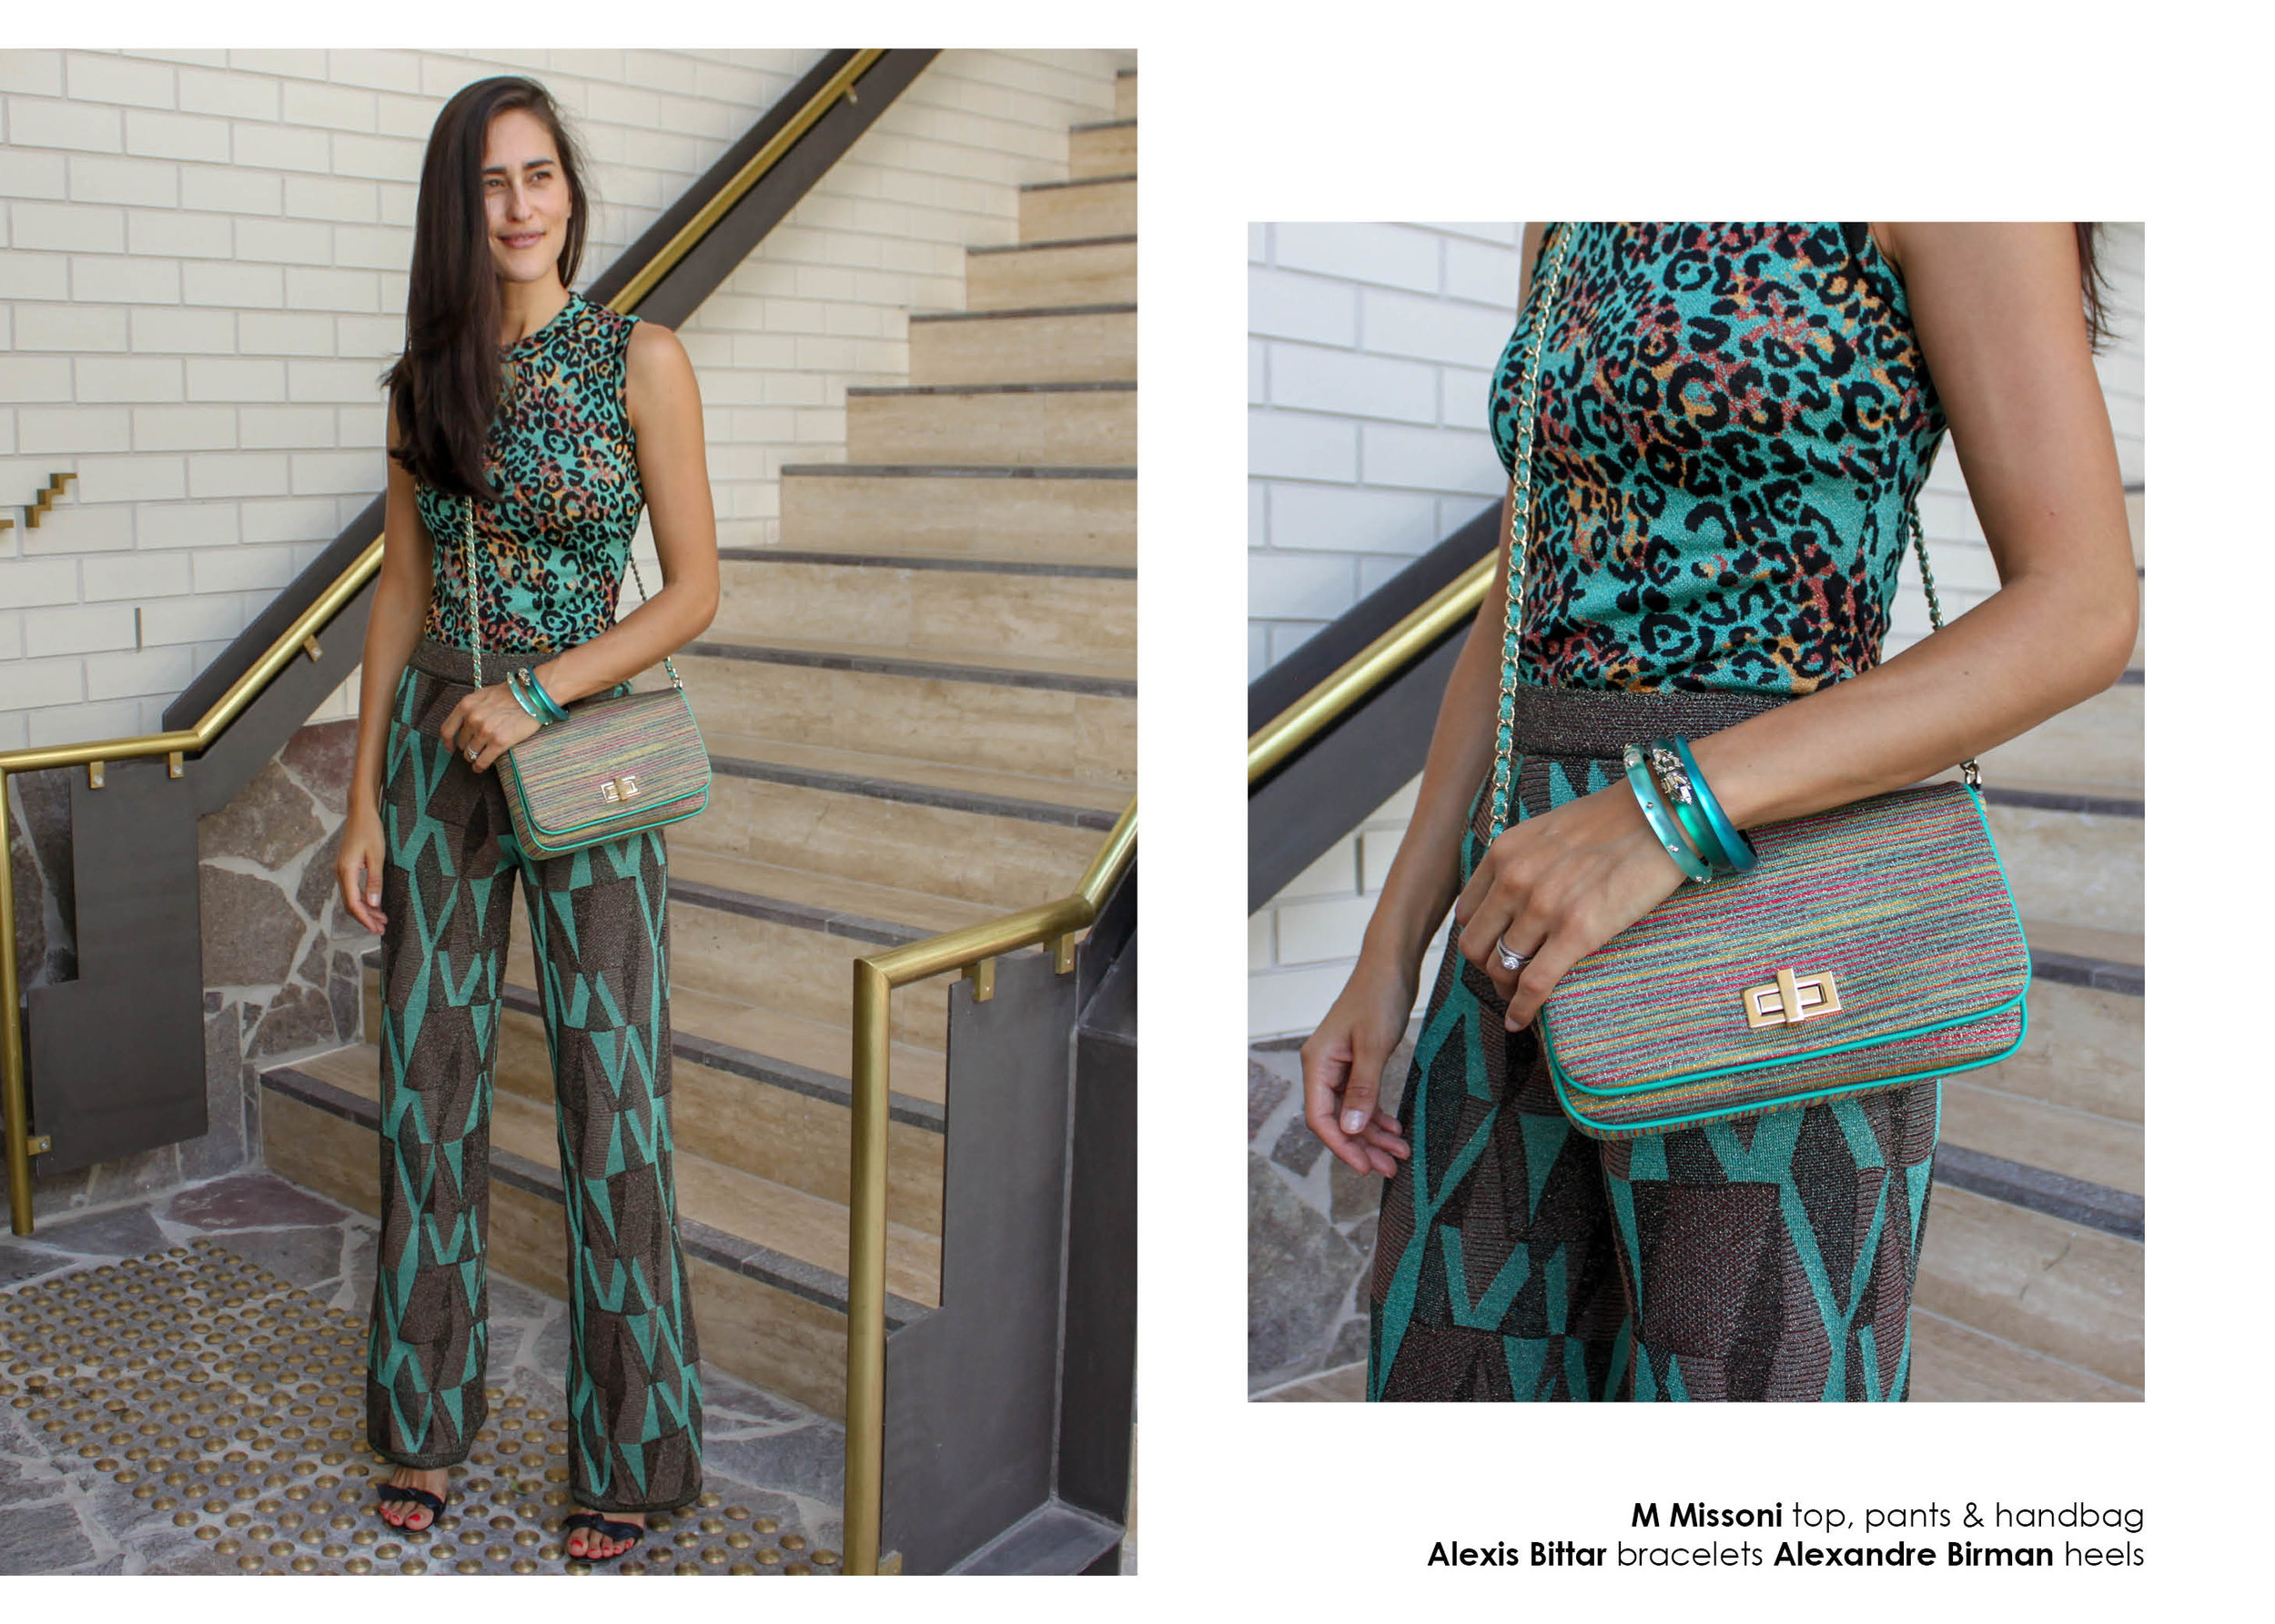 M Missoni-Feb19-newsletter-layout-2.jpg